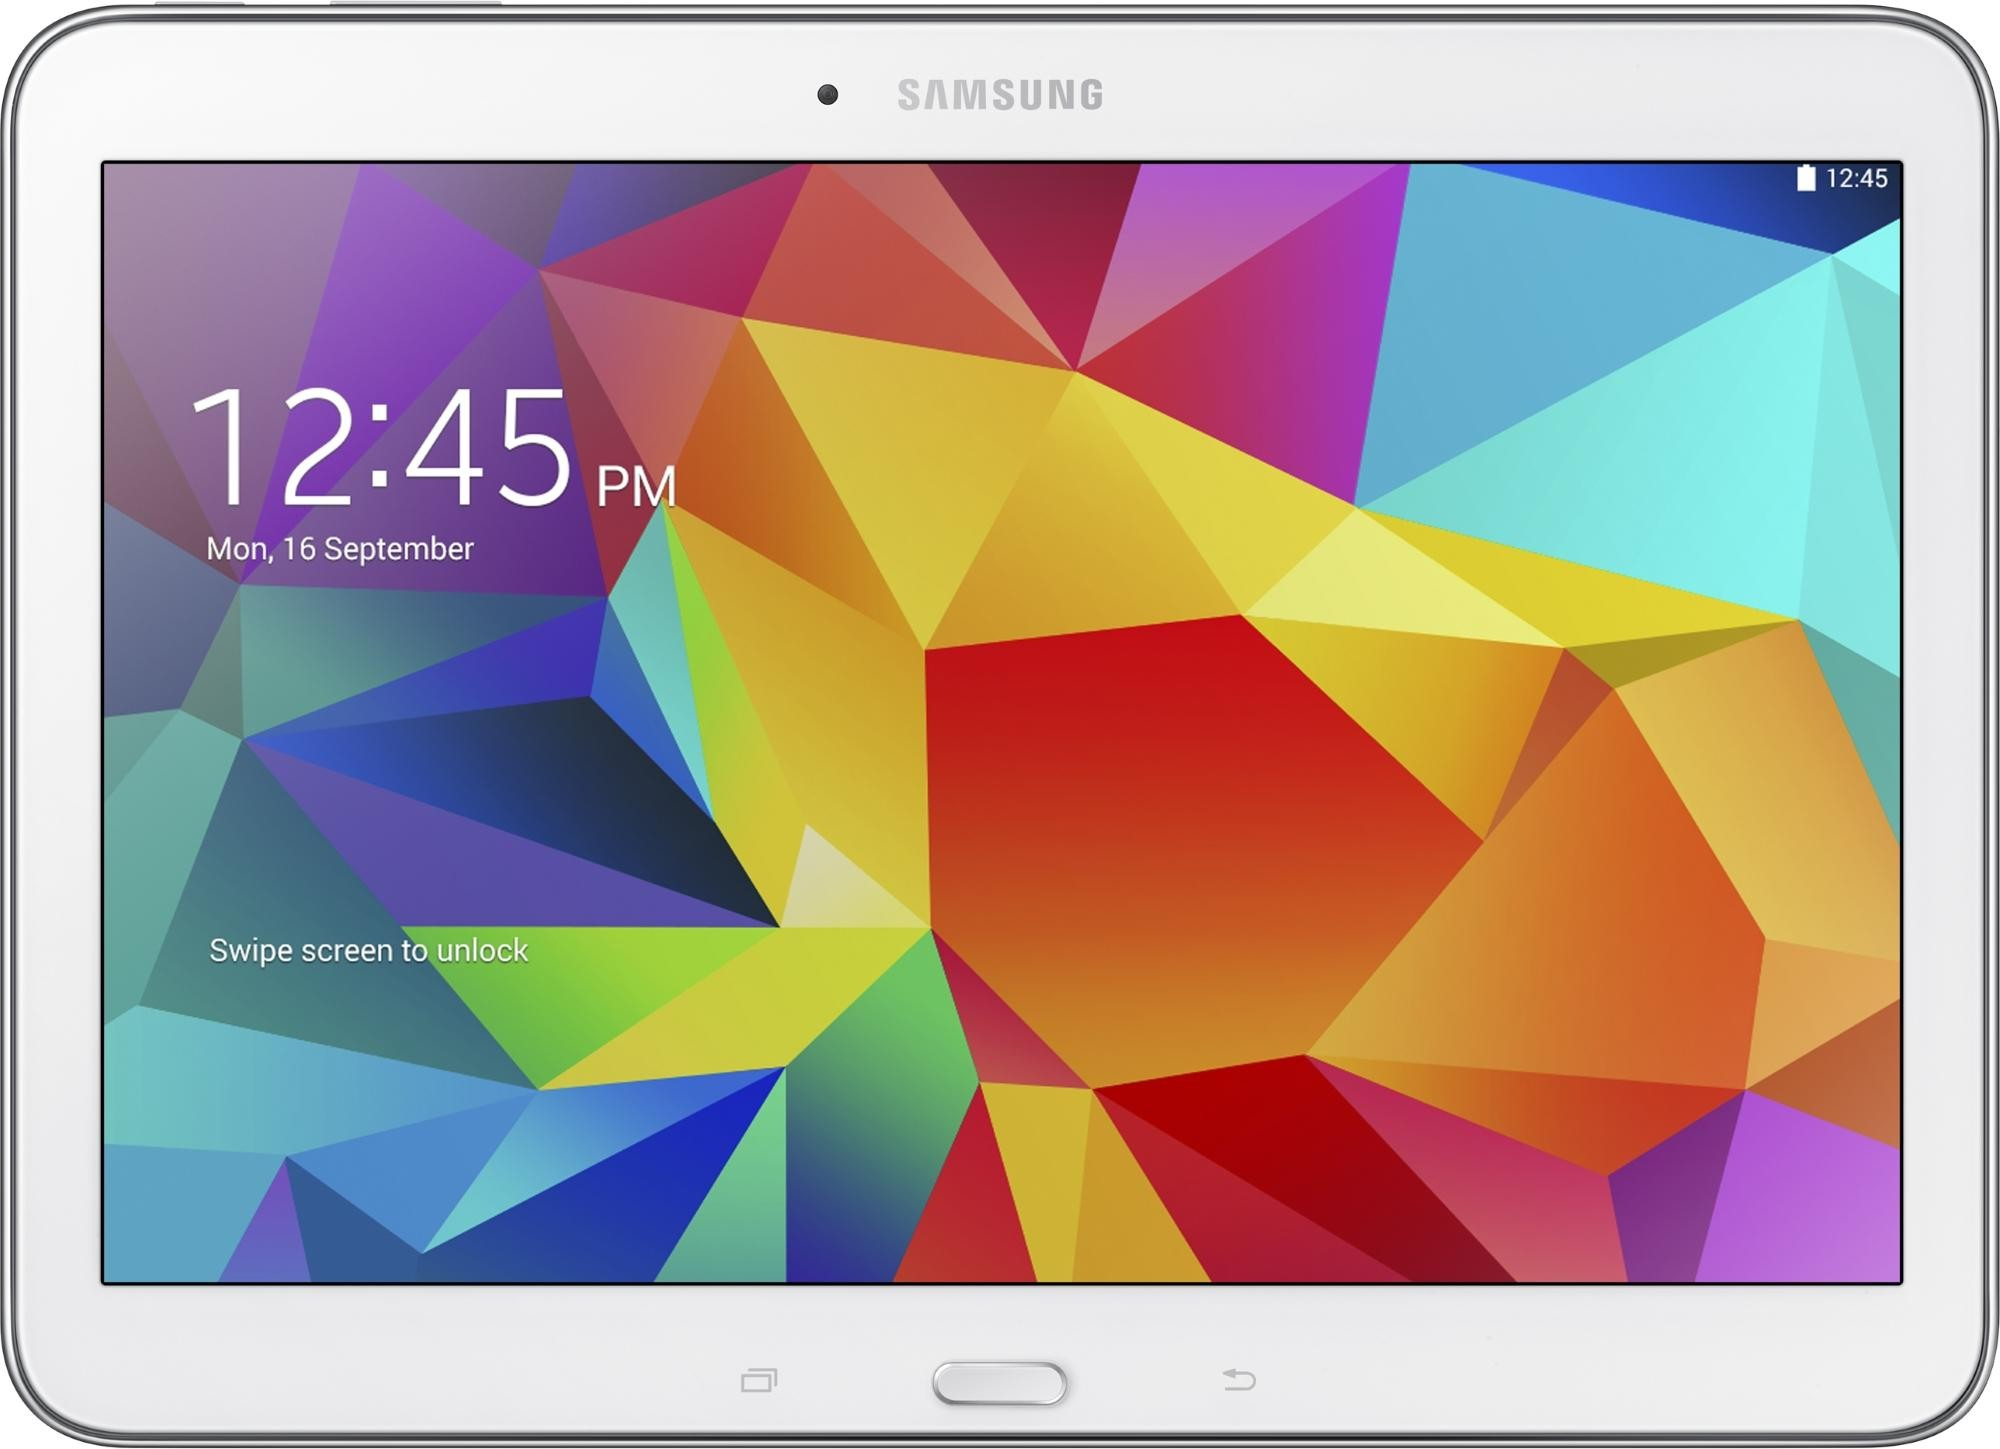 samsung_galaxy_tab_4_101_wifi_16gb_t530_white-27052158-1.jpg